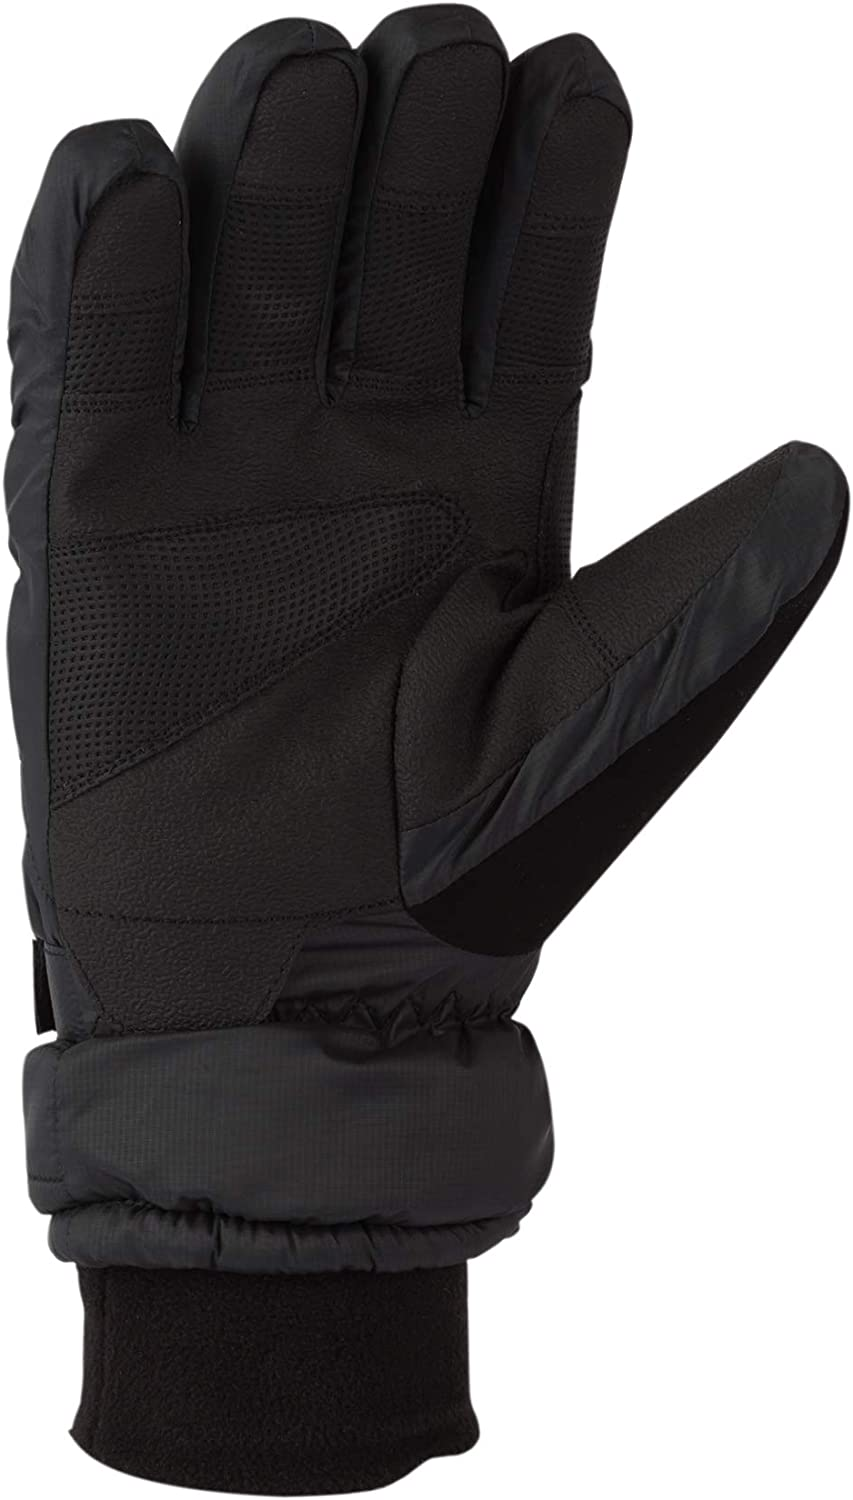 Carhartt Women's Quilts Insulated Breathable Glove with Waterproof Wicking Insert